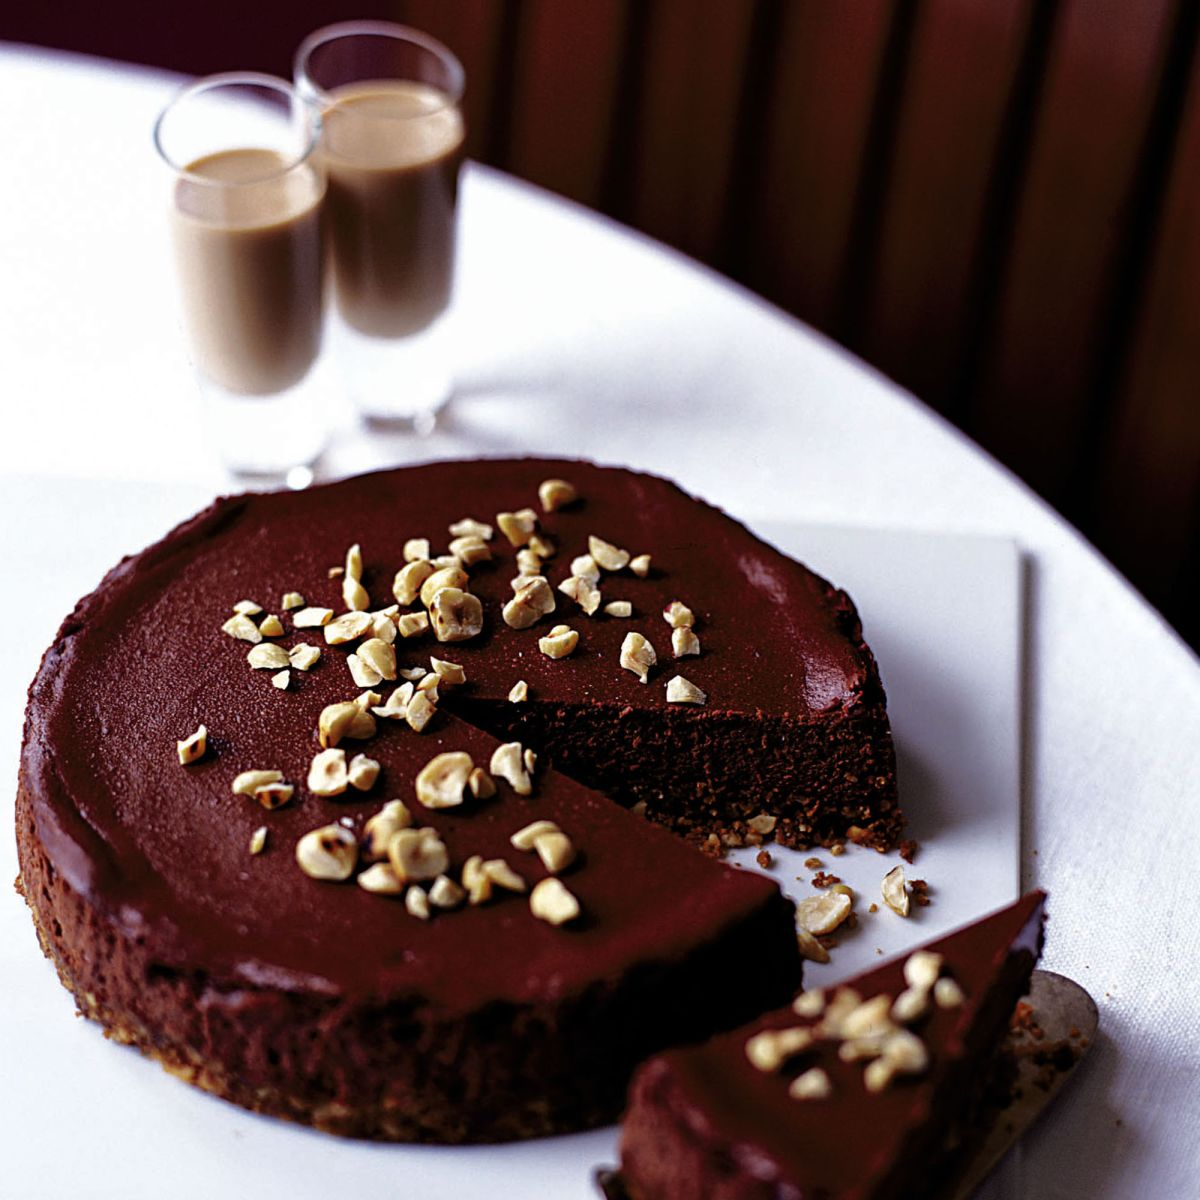 Make this chocolate, hazelnut and amarula cheesecake for a decadent end to your feast